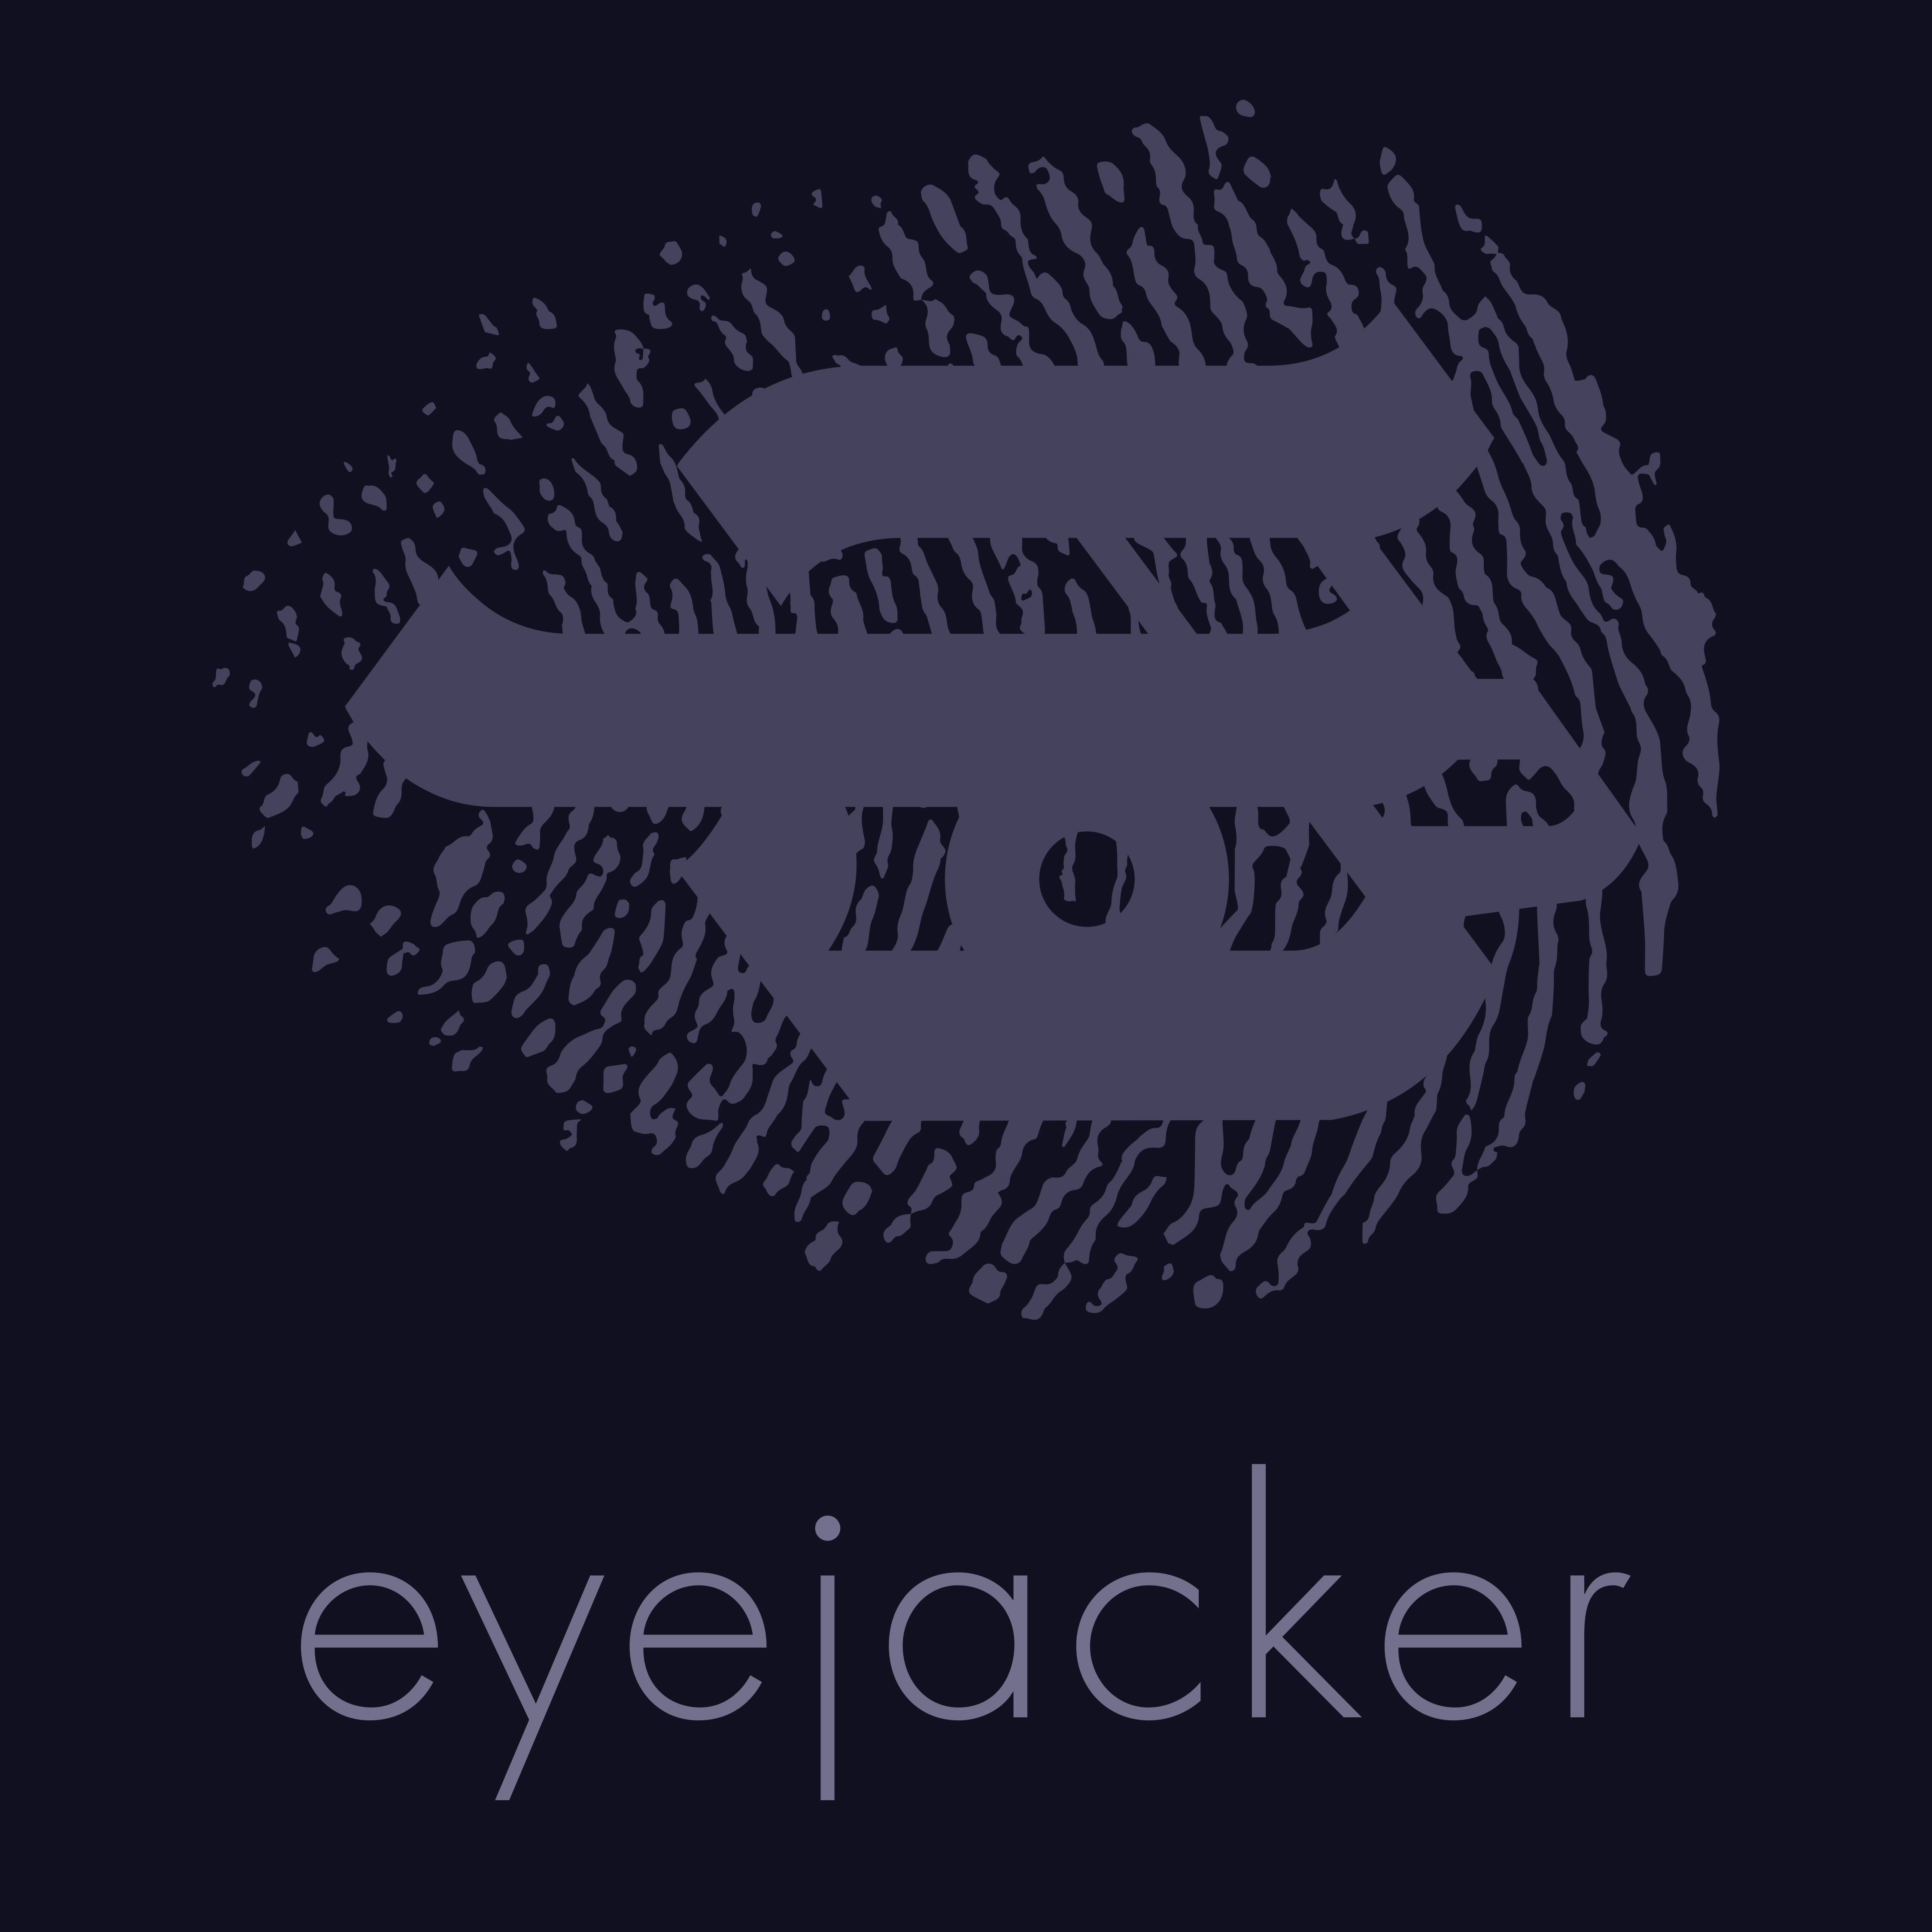 eyejacker's shop Logo